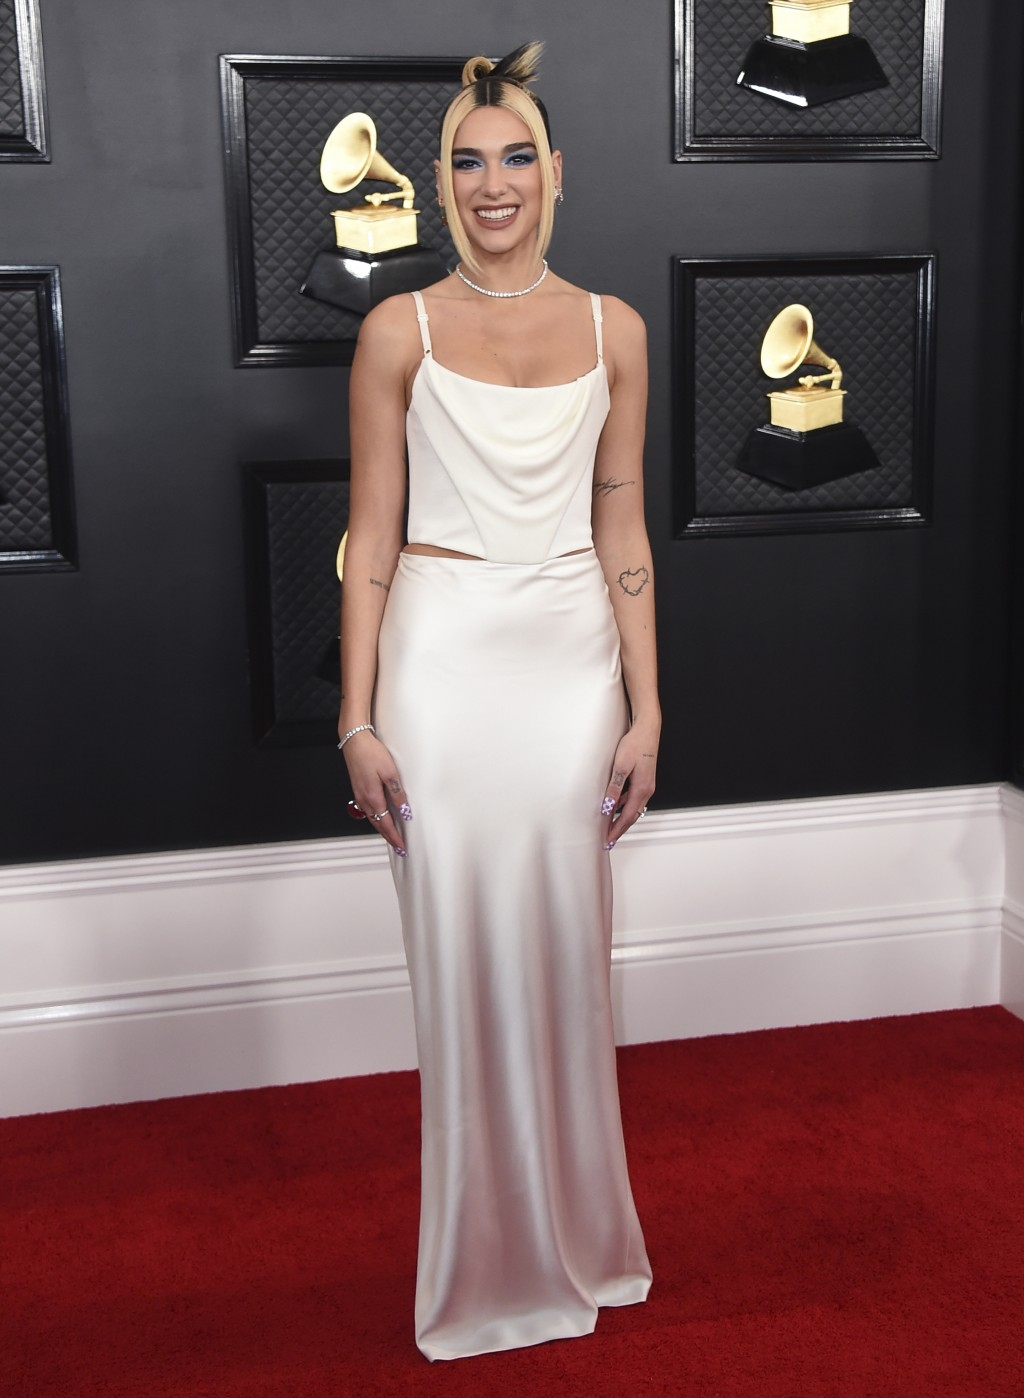 """FILE - This Jan. 26, 2020 file photo shows Dua Lipa at the 62nd annual Grammy Awards in Los Angeles. Dua Lipa's song """"Don't Start Now"""" was named one o..."""